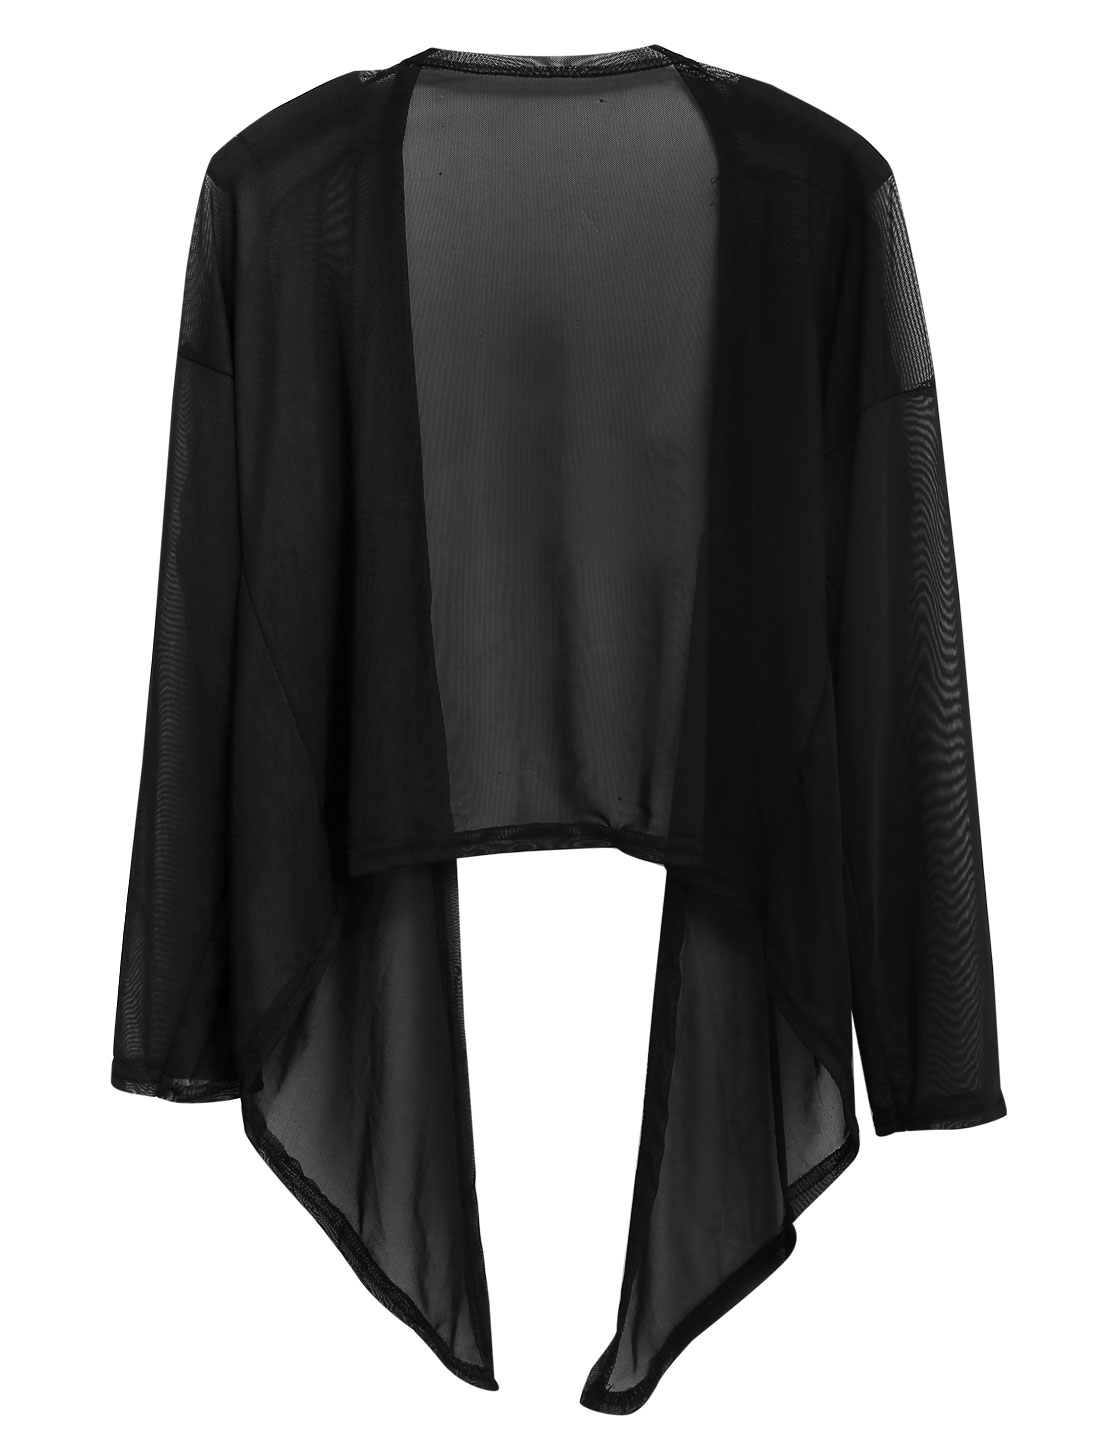 Lady Front Opening Asymmetric Hem Semi Sheer Casual Cardigan Black XS